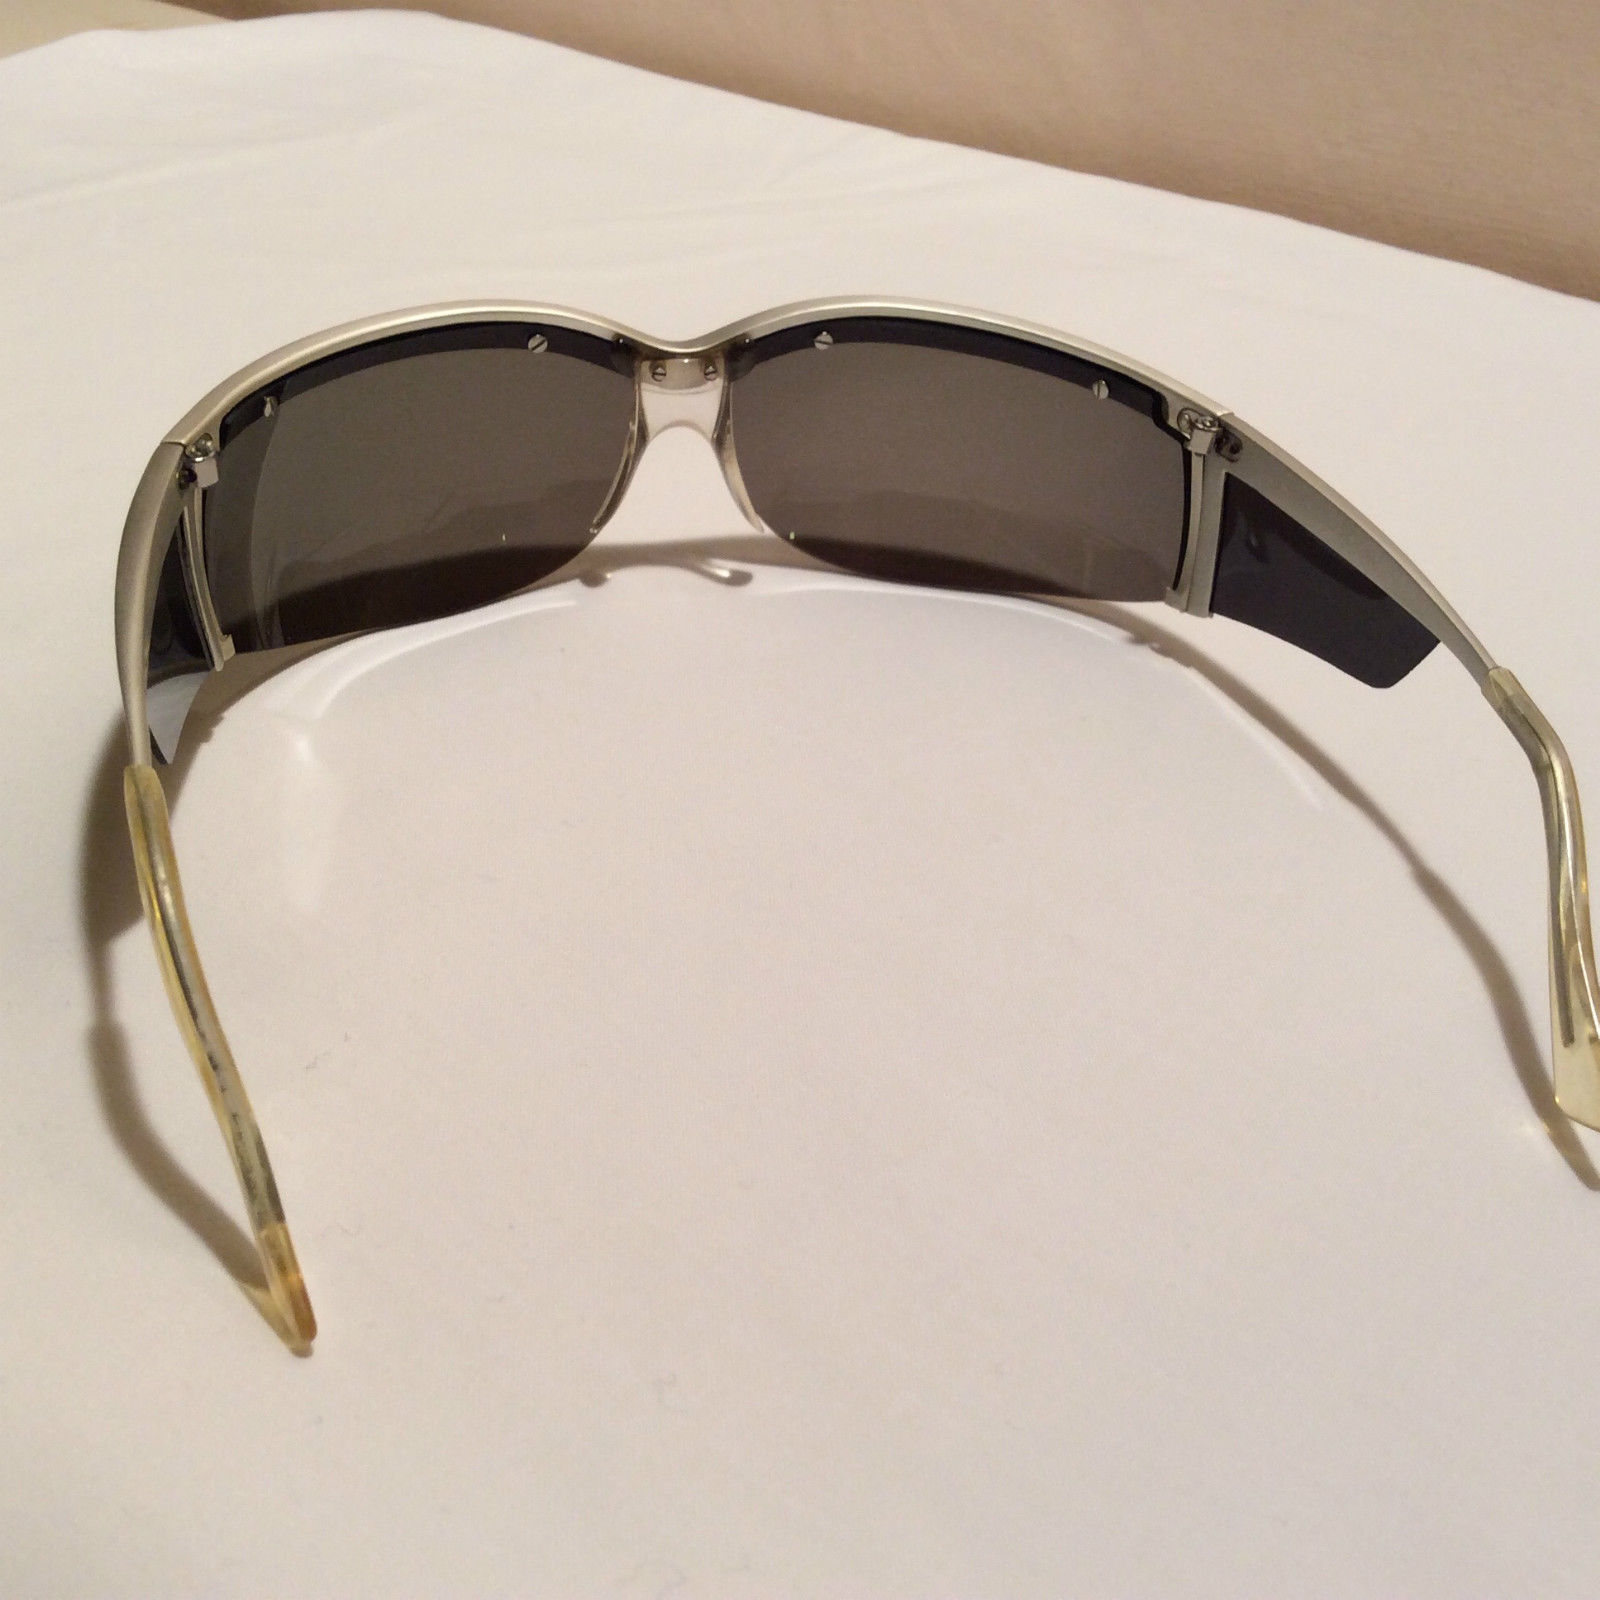 Ford Mustang 1960s Original Sunglasses